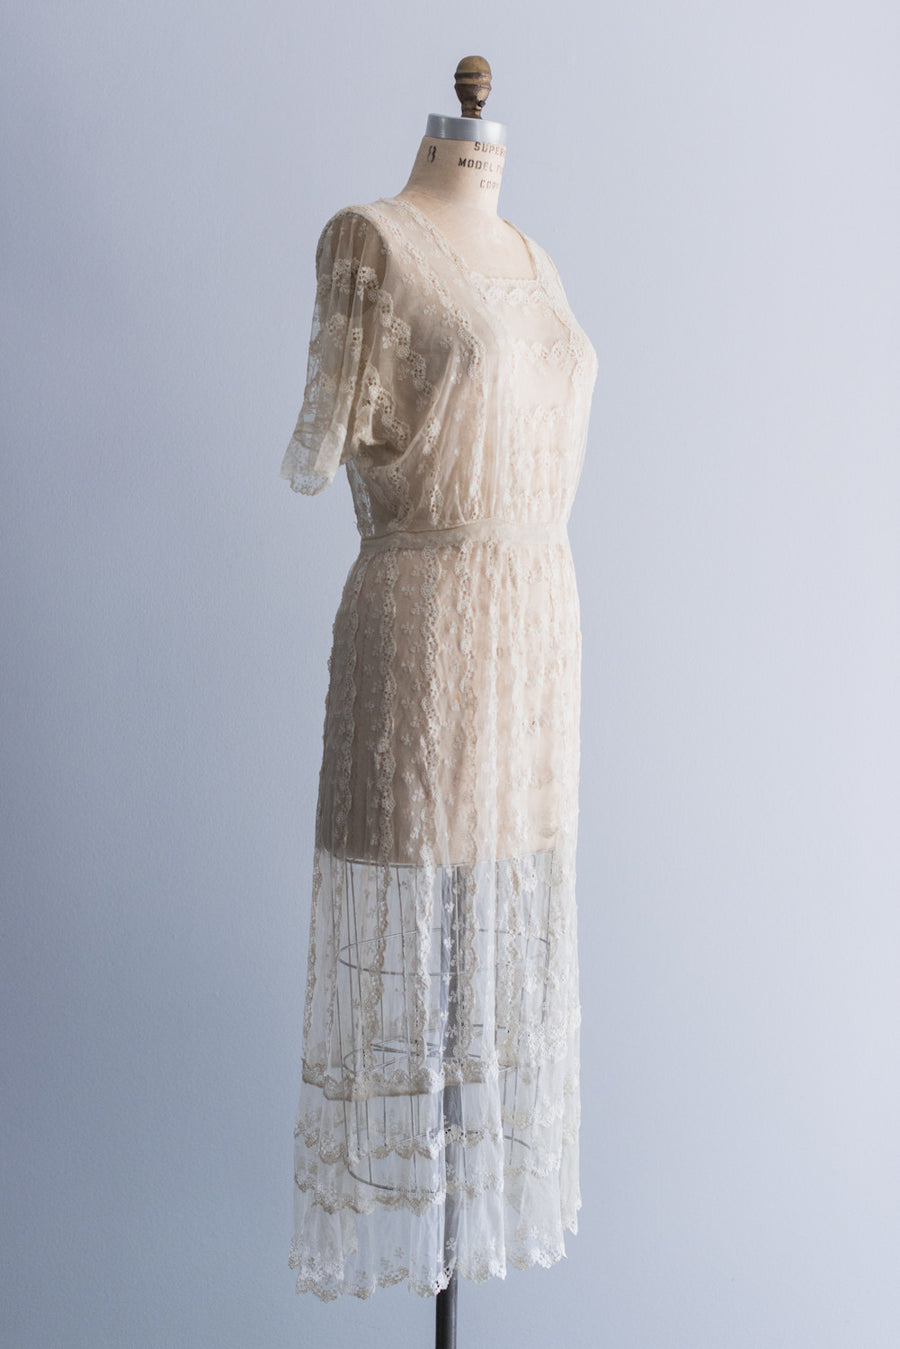 1920s Schiffli Lace Tulle Dress - M/L